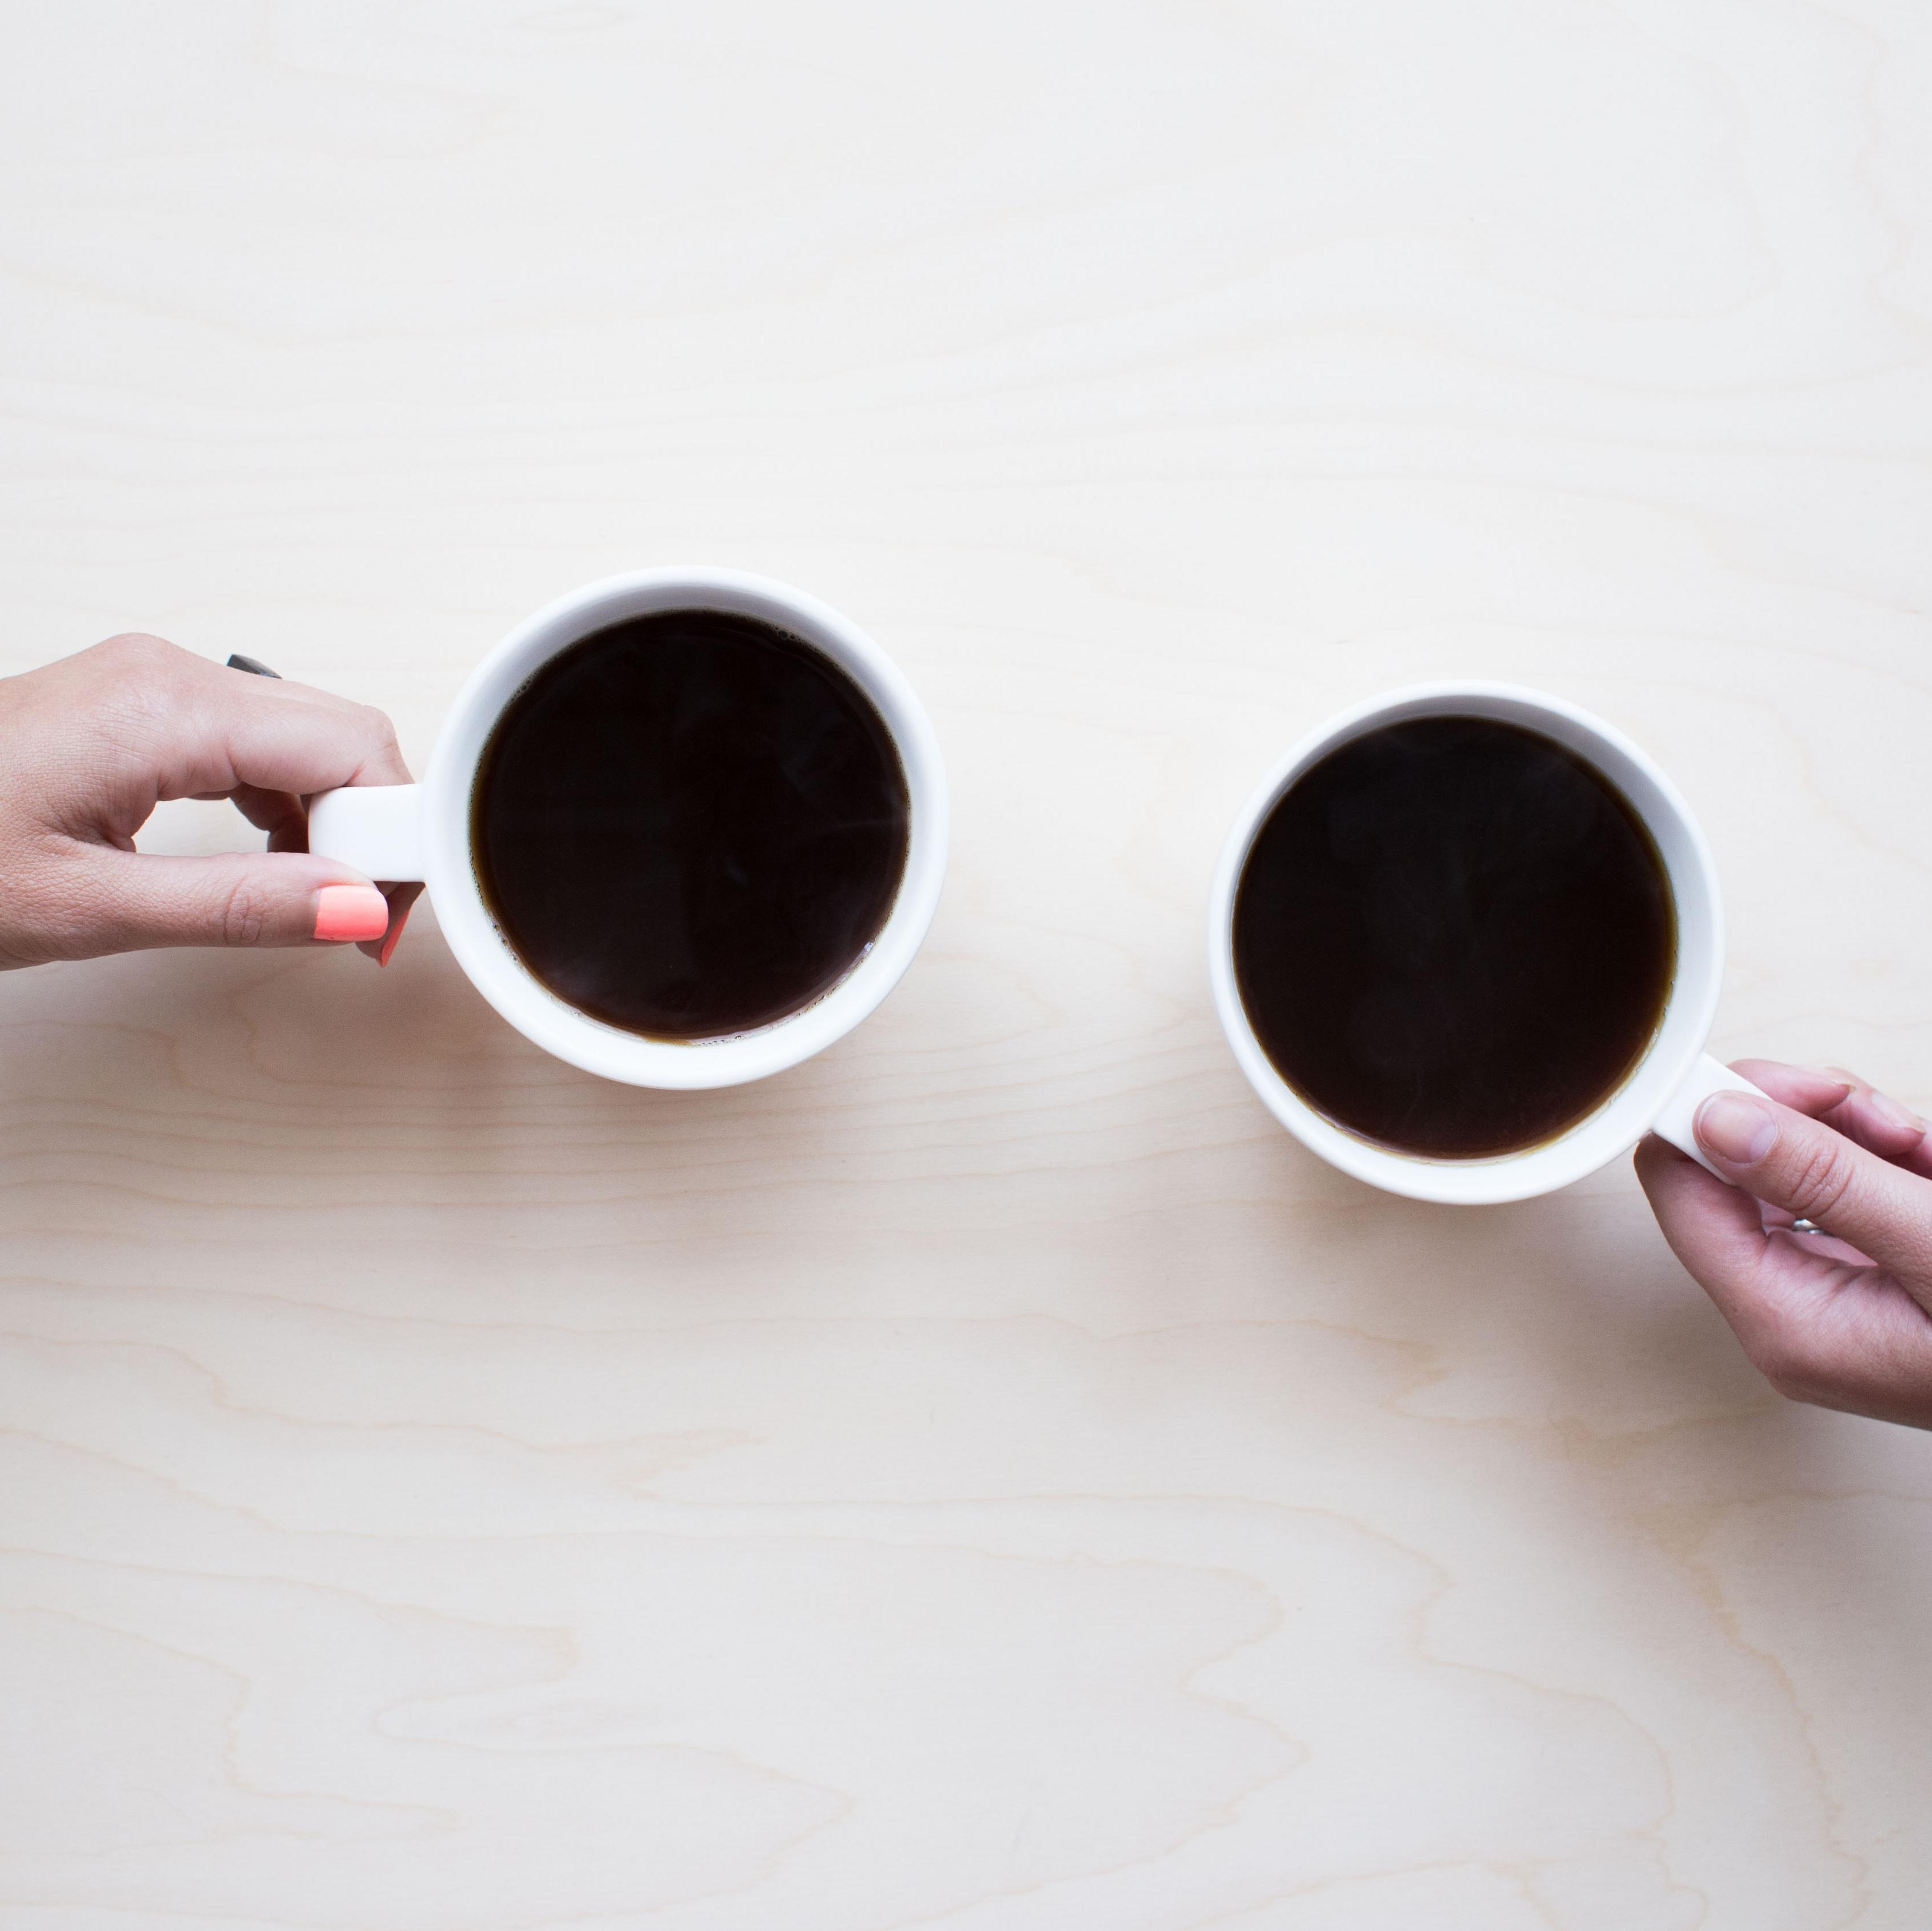 Two cups of coffee on a table